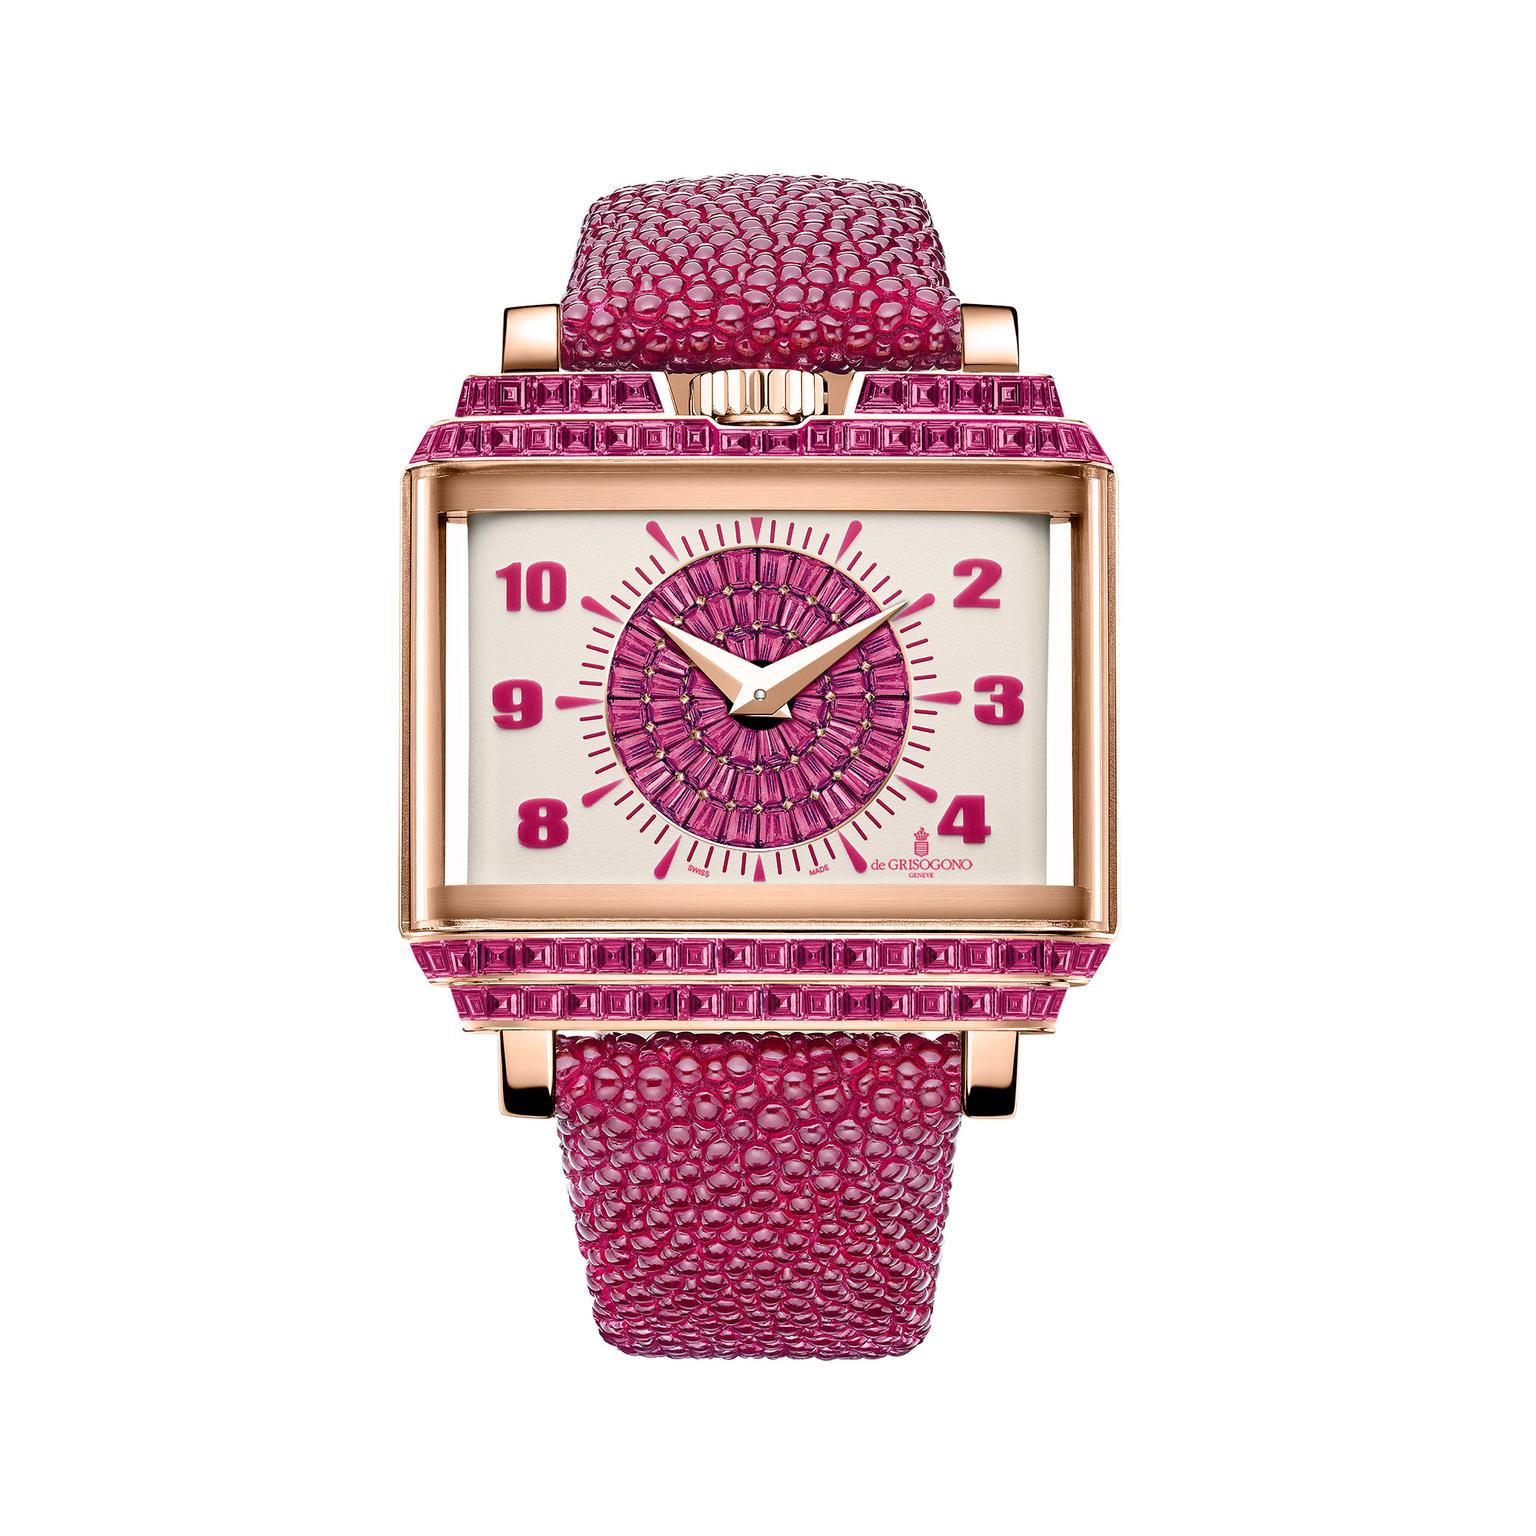 de GRISOGONO Retro Lady Baguette watch